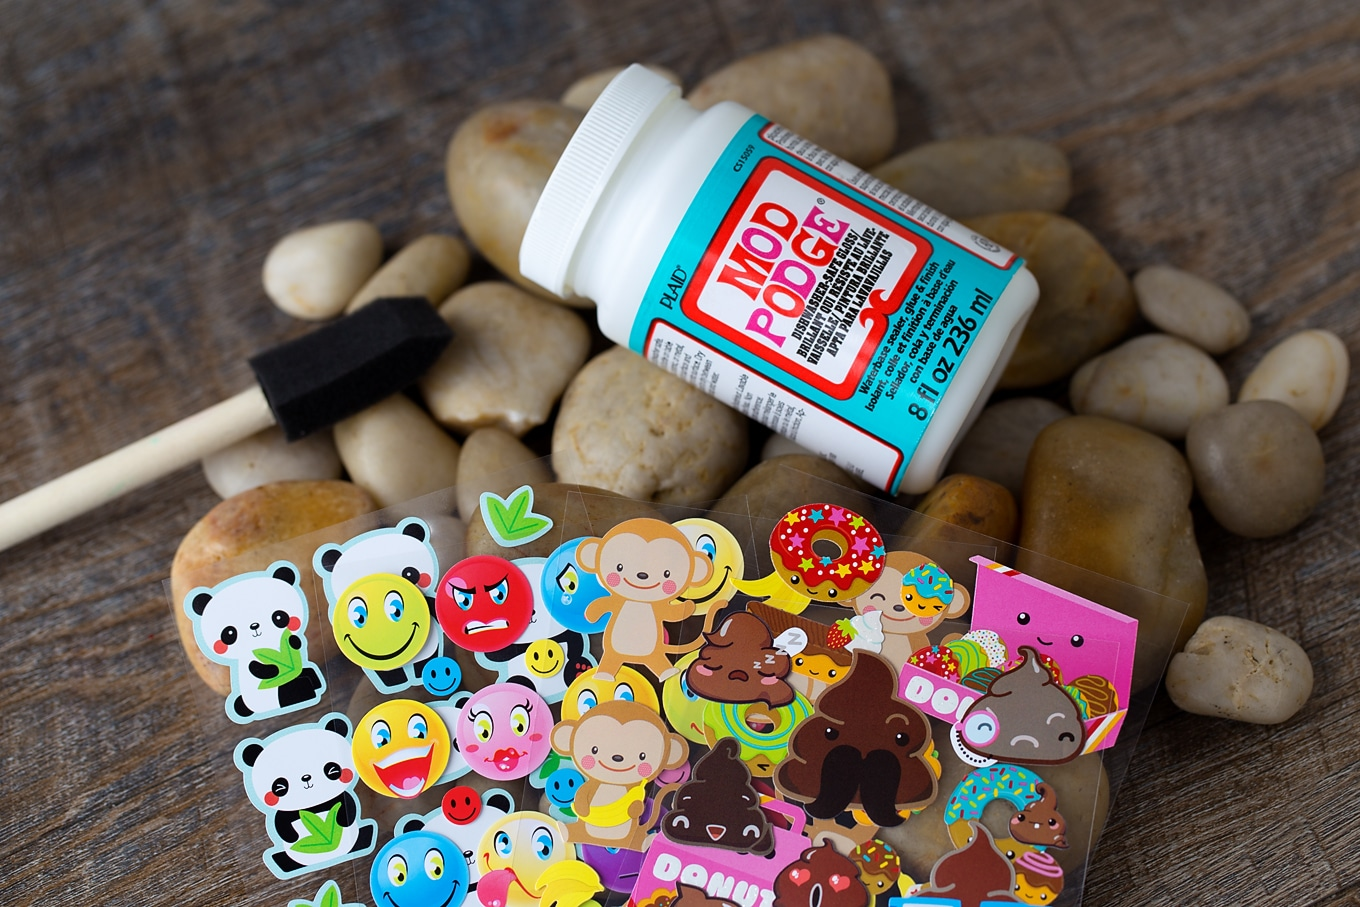 Do you love decorating rocks with your kids, but dread cleaning up the mess? If so, these mess-free sticker rocks are for you. Perfect for rock hunting!